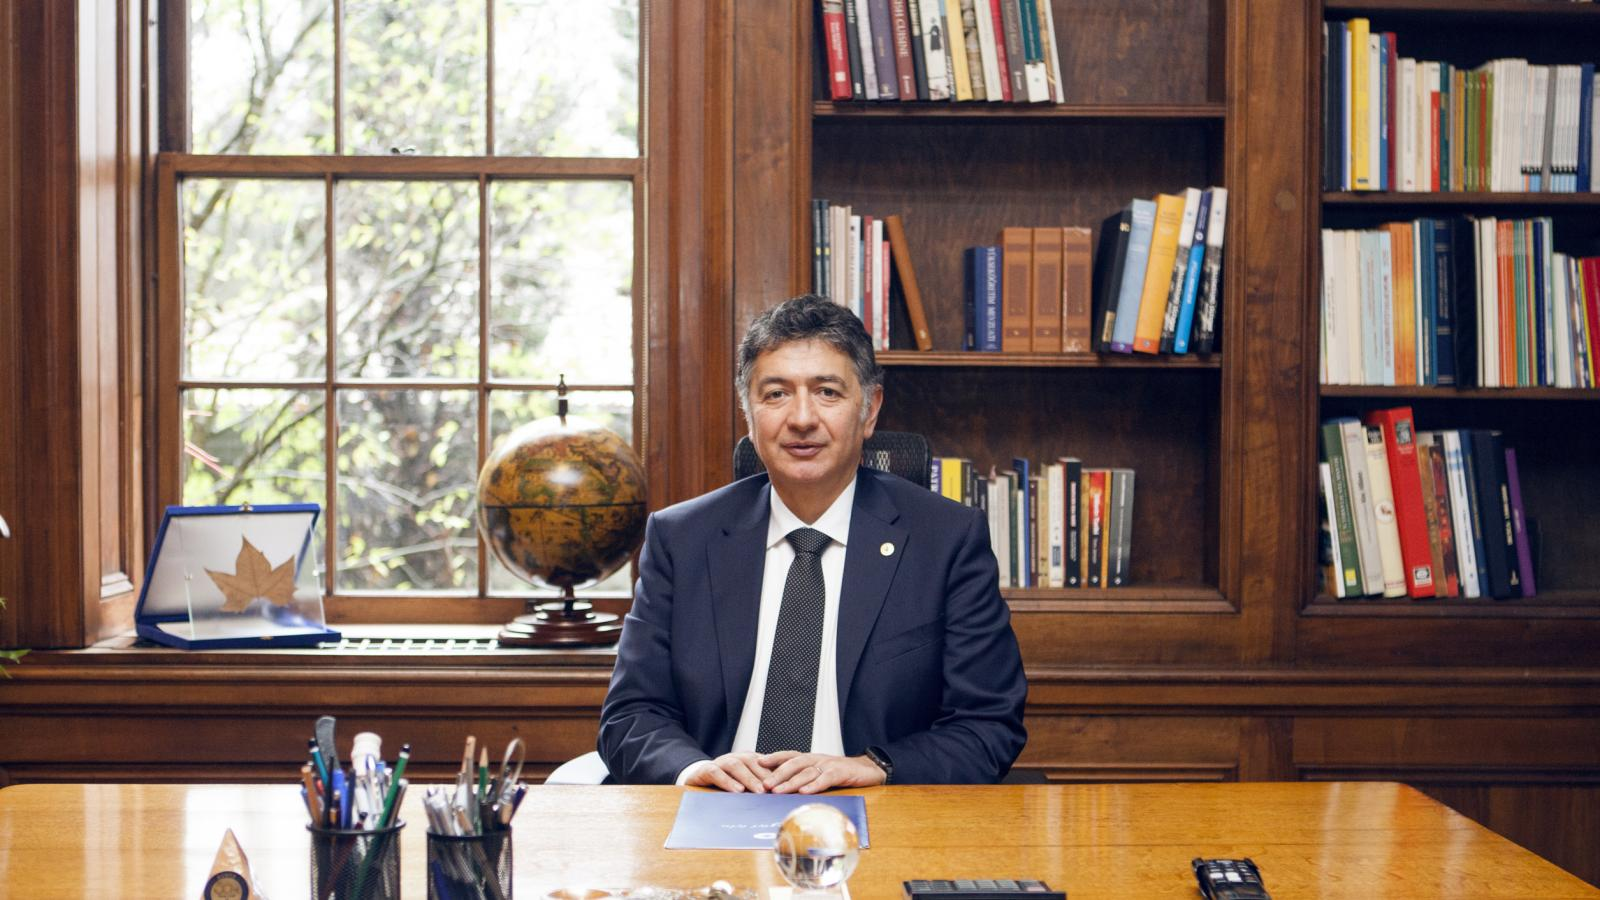 Professor Mehmed Özkan Starts His Term as President of Bogazici University